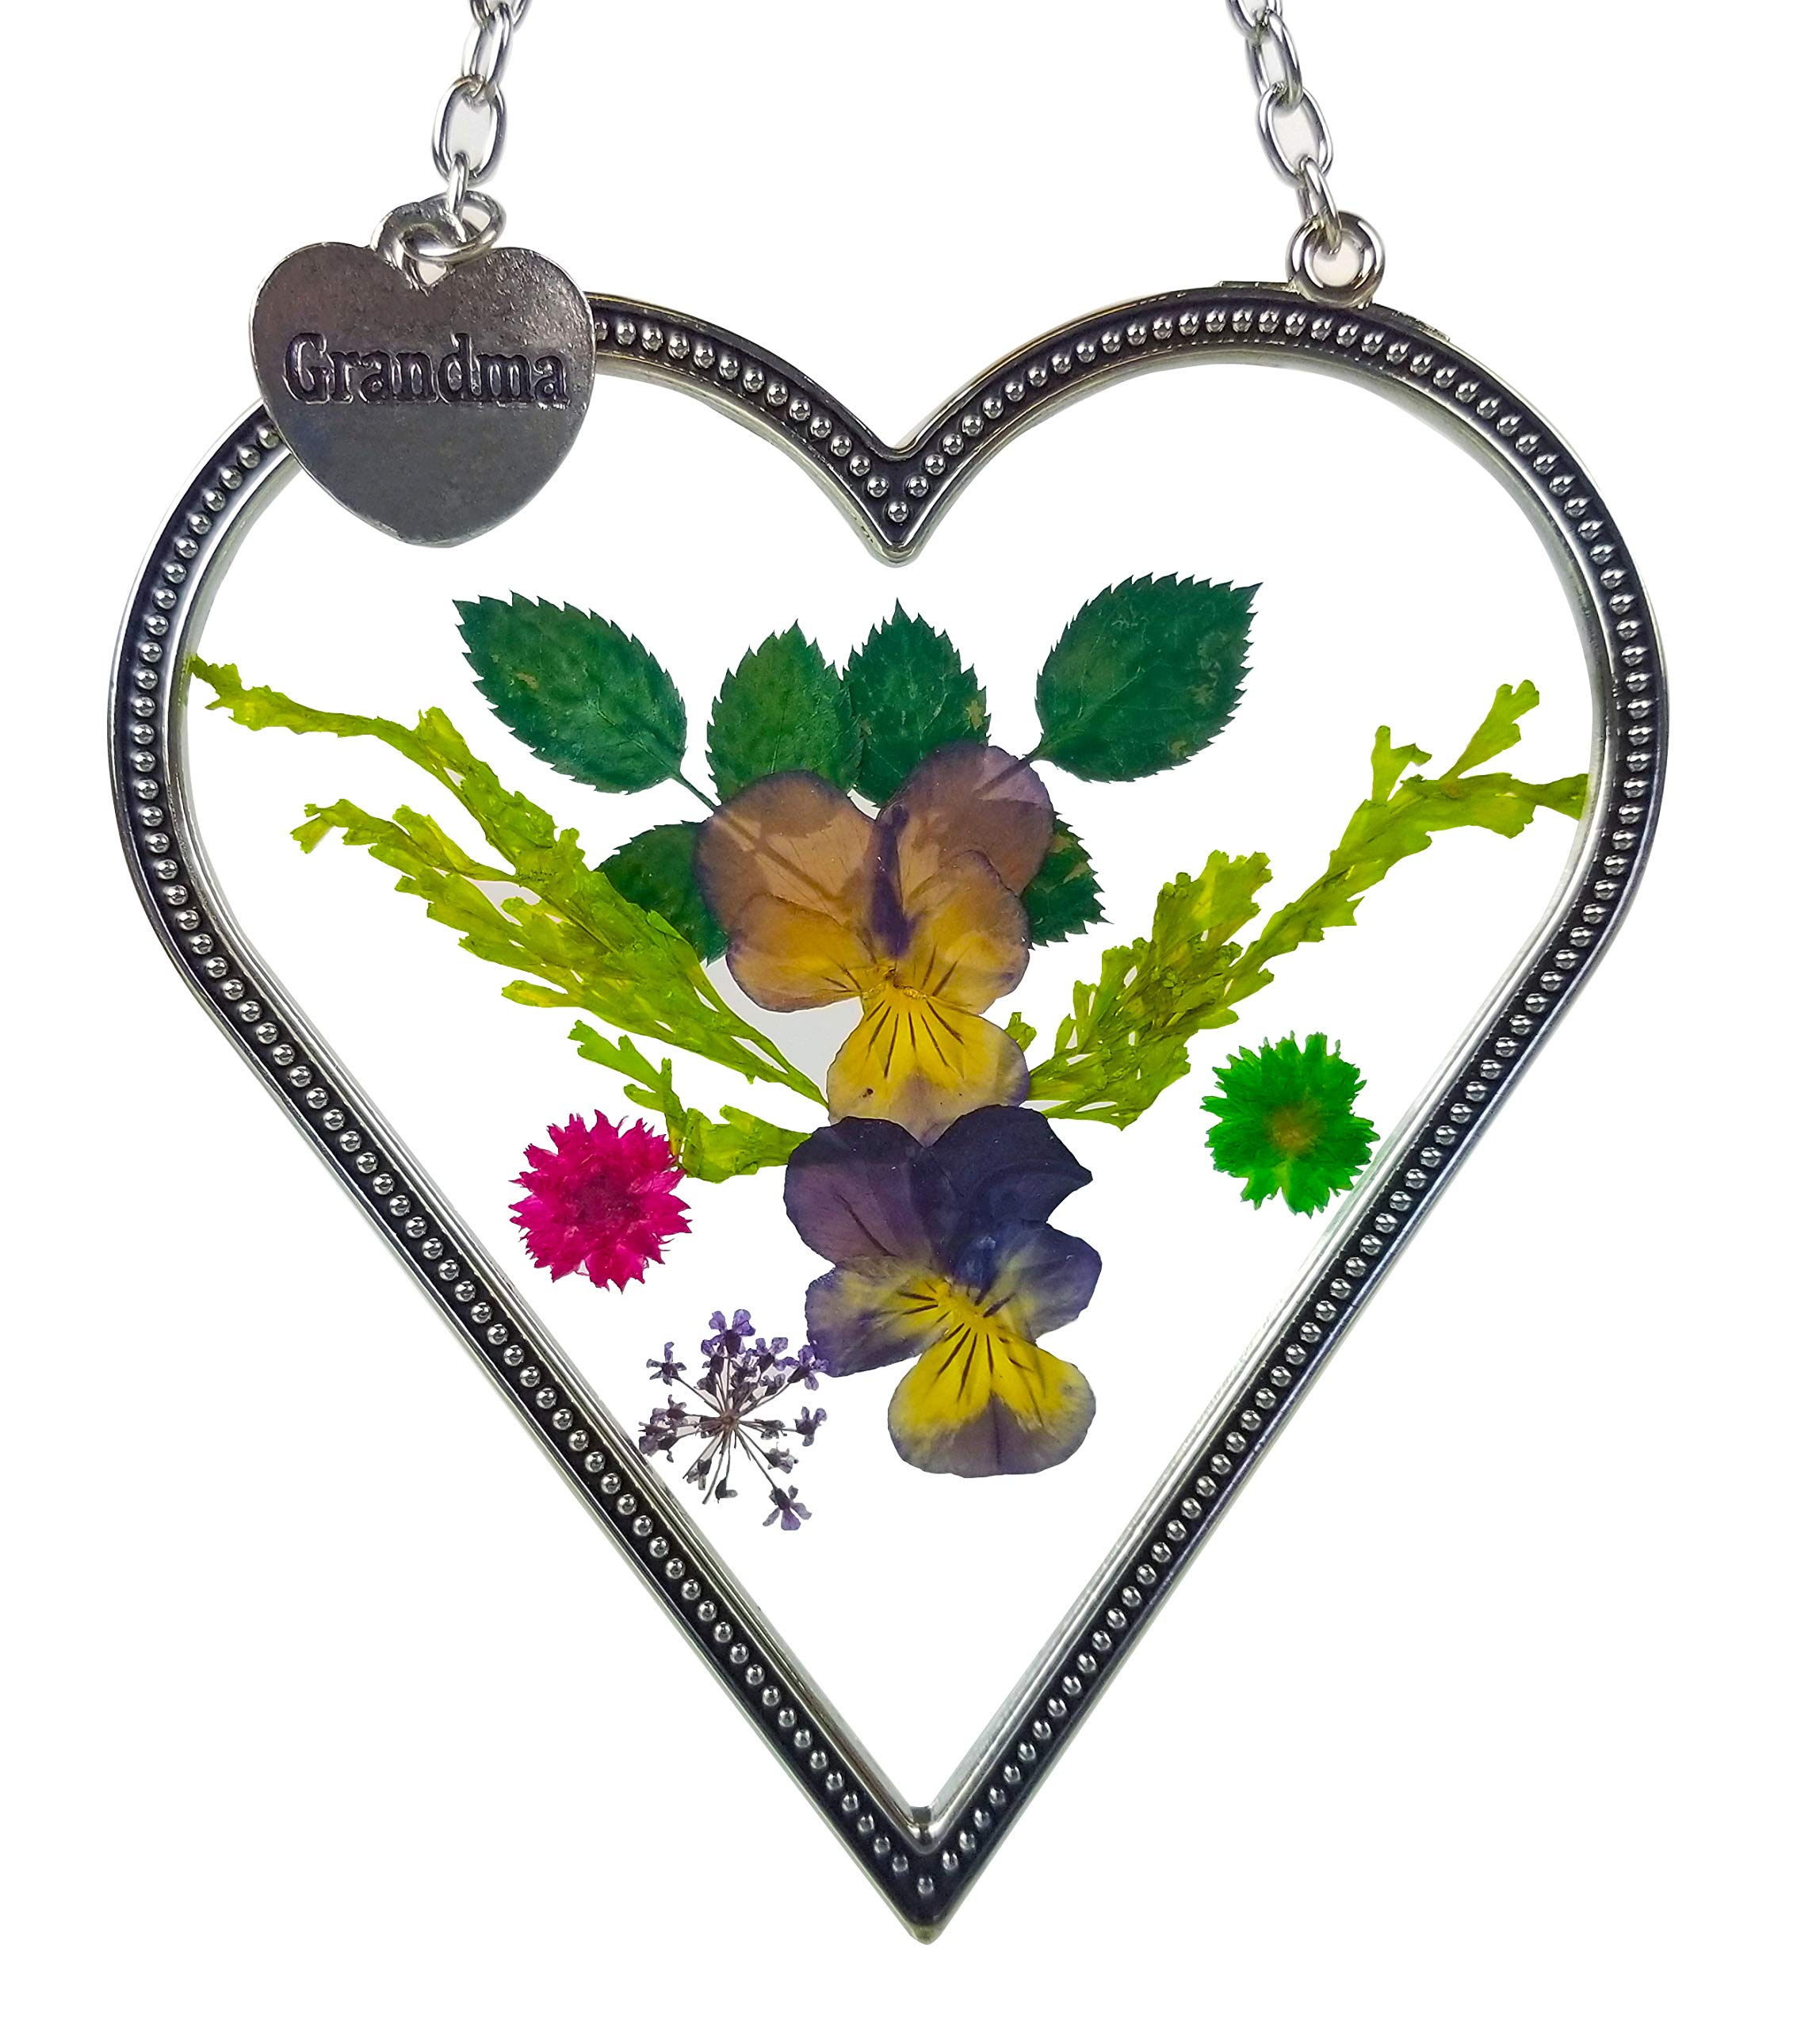 Banberry Designs Grandma Heart Shaped Suncatcher with Real Pressed Flowers in Glass and Silver Metal Hanging Charm - Grandmother Gifts - Gifts for Grandma